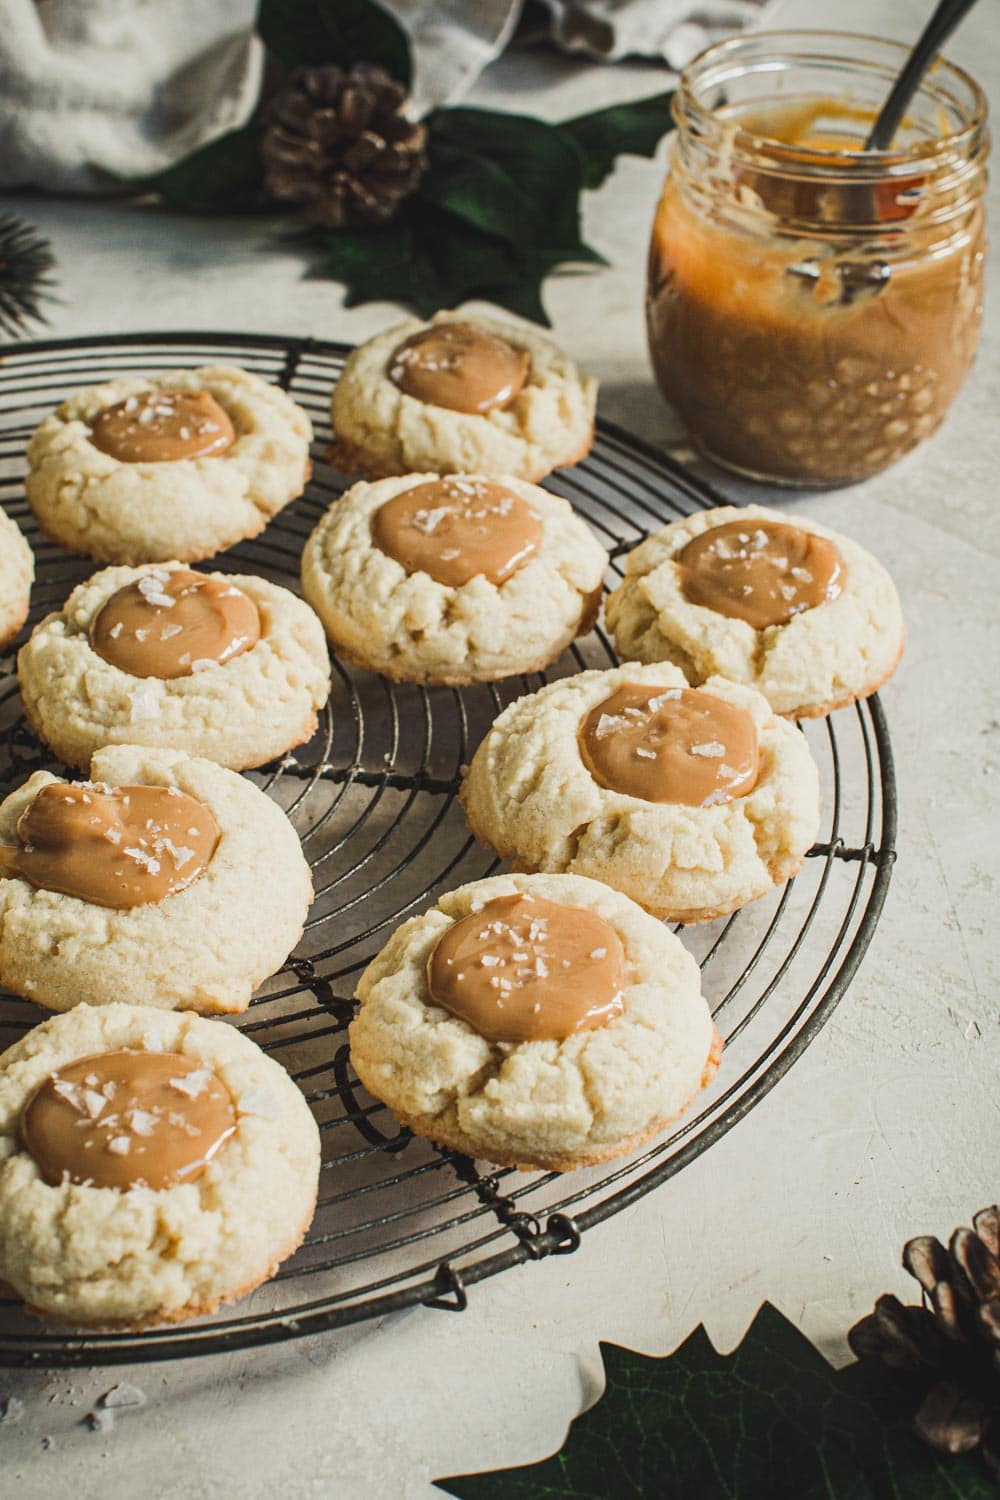 Dulce de Leche Thumbprint cookies on a round wire rack with sauce in a jar behind them.